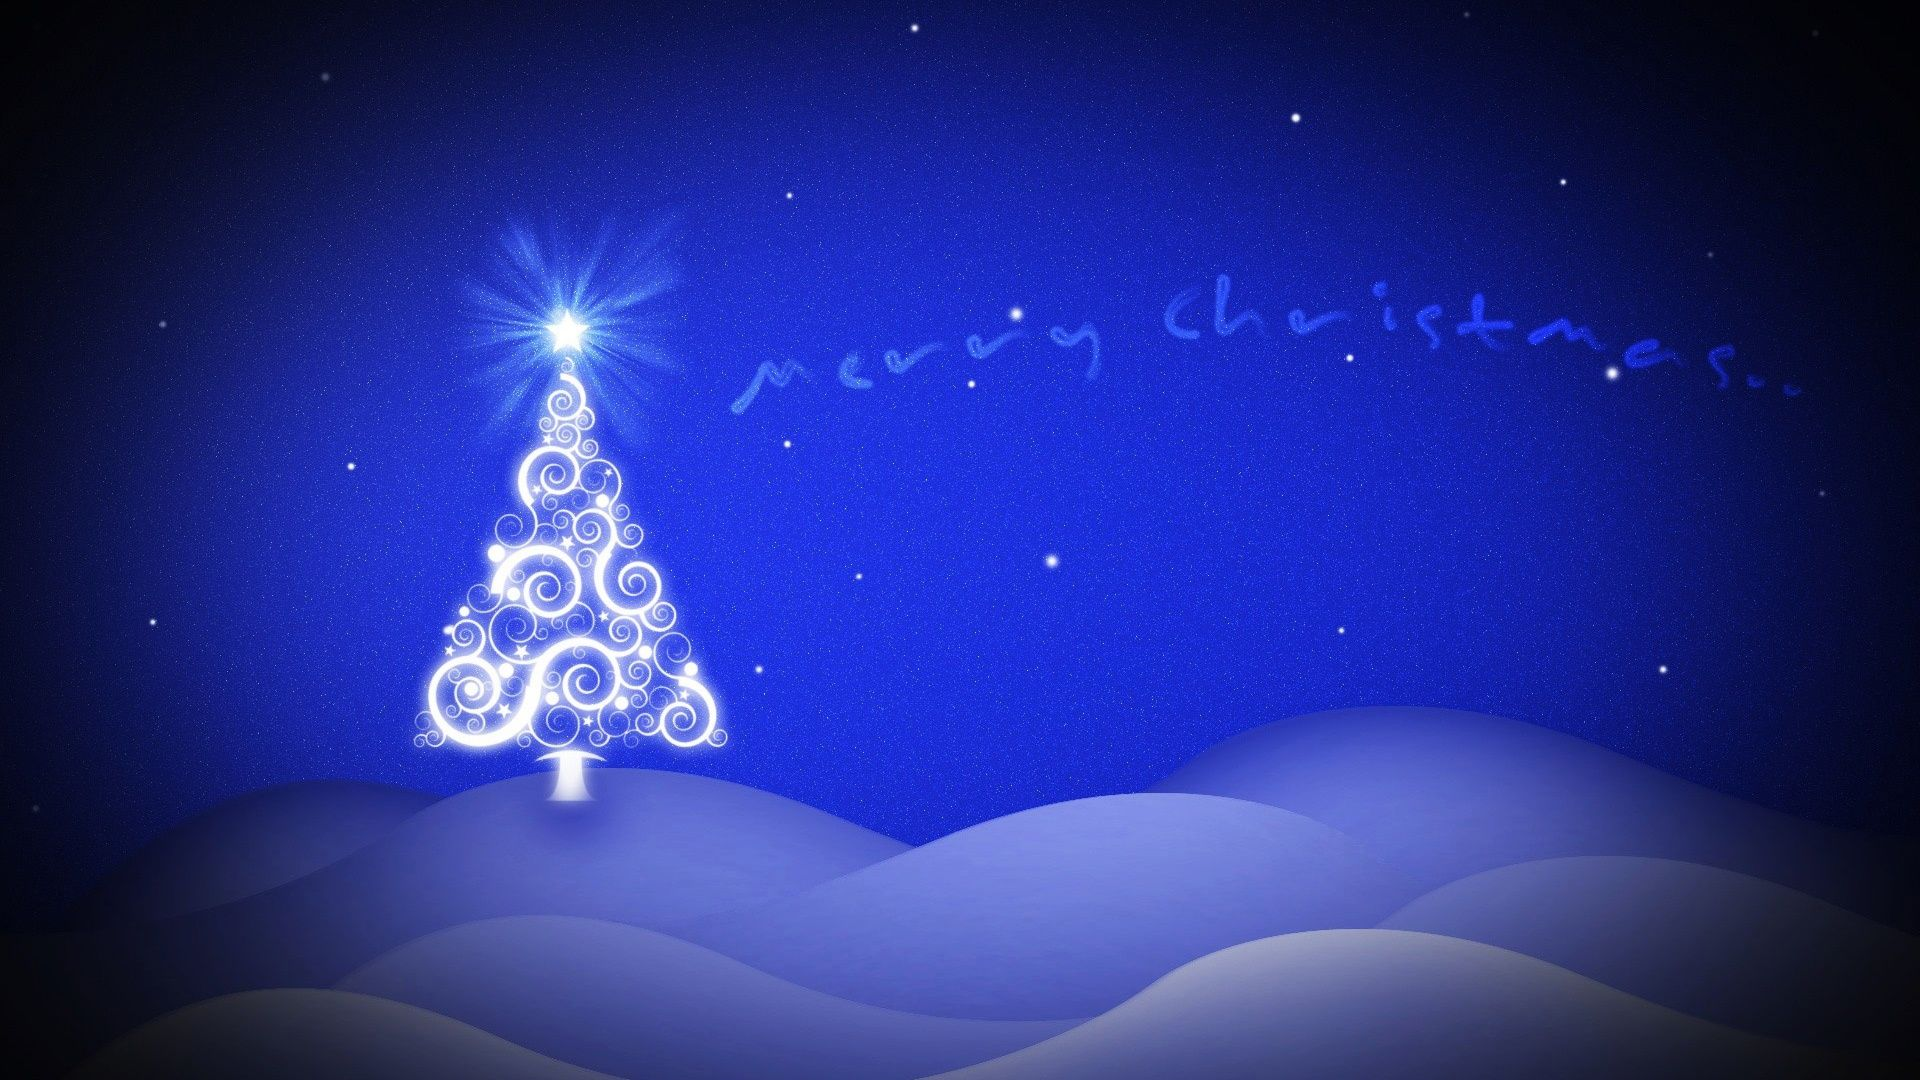 Happy New Year 2014 And Merry Christmas Merry Christmas